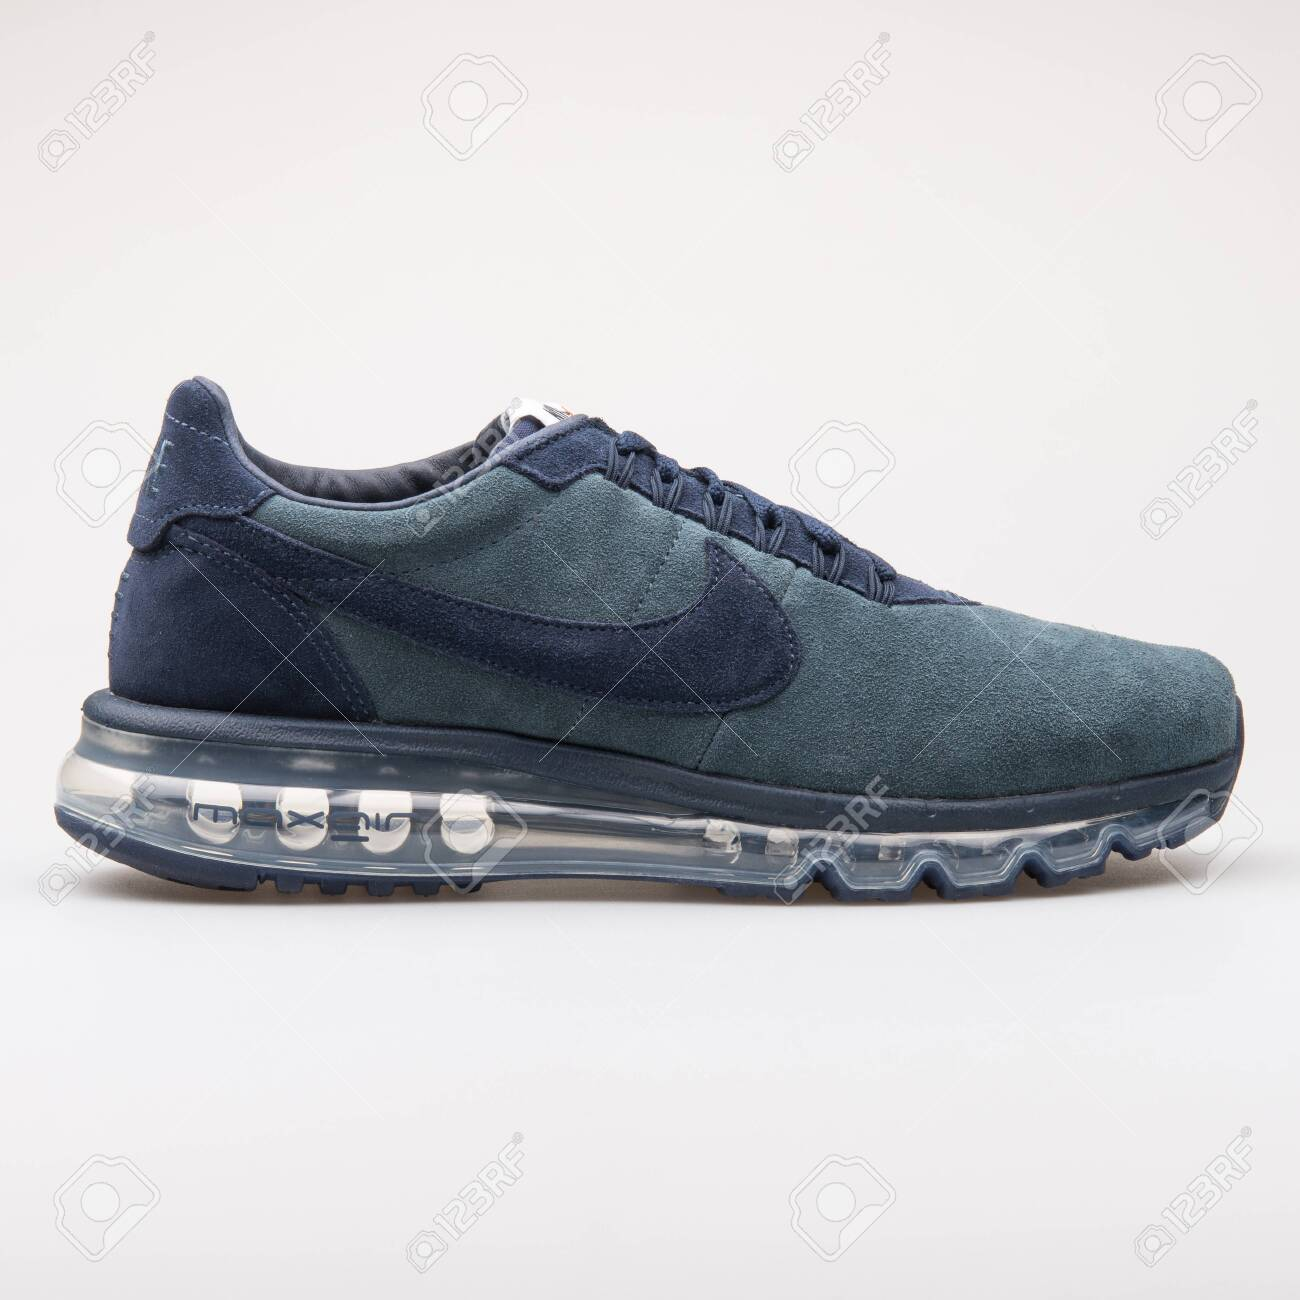 presentar Descompostura melodía  VIENNA, AUSTRIA - AUGUST 23, 2017: Nike Air Max LD Zero Blue.. Stock Photo,  Picture And Royalty Free Image. Image 127883667.